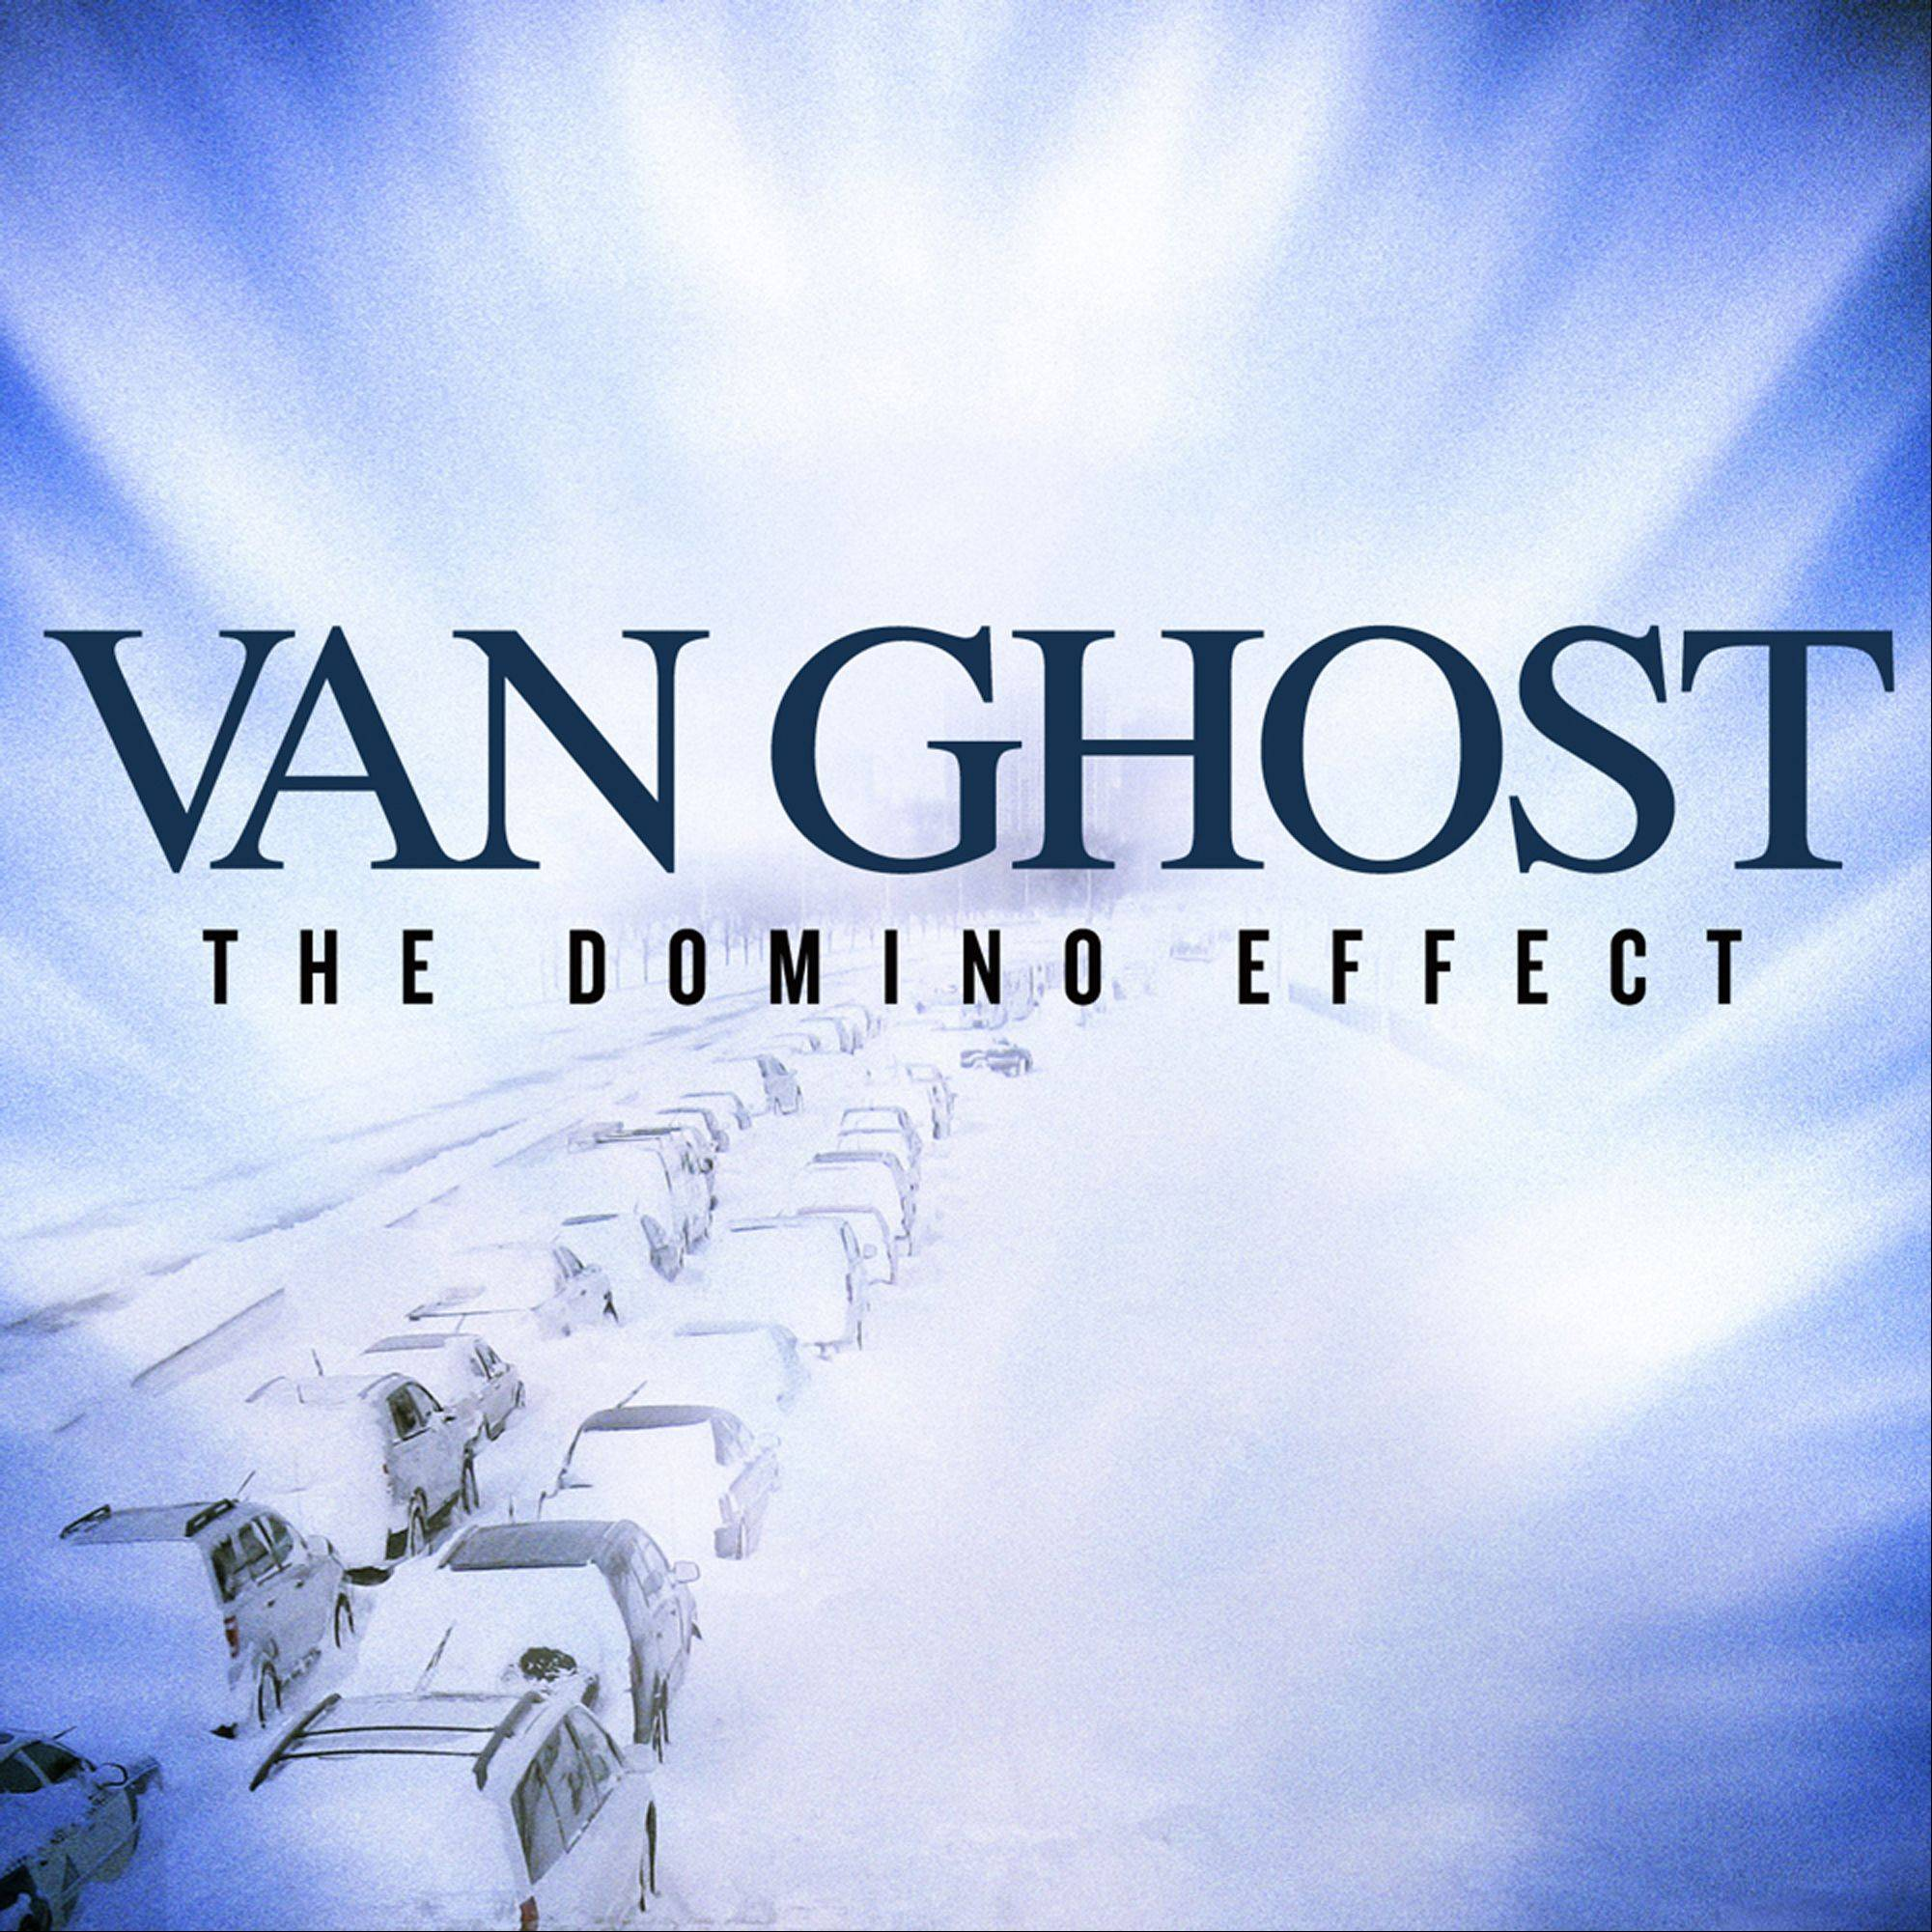 Van Ghost's debut release is due out in July.